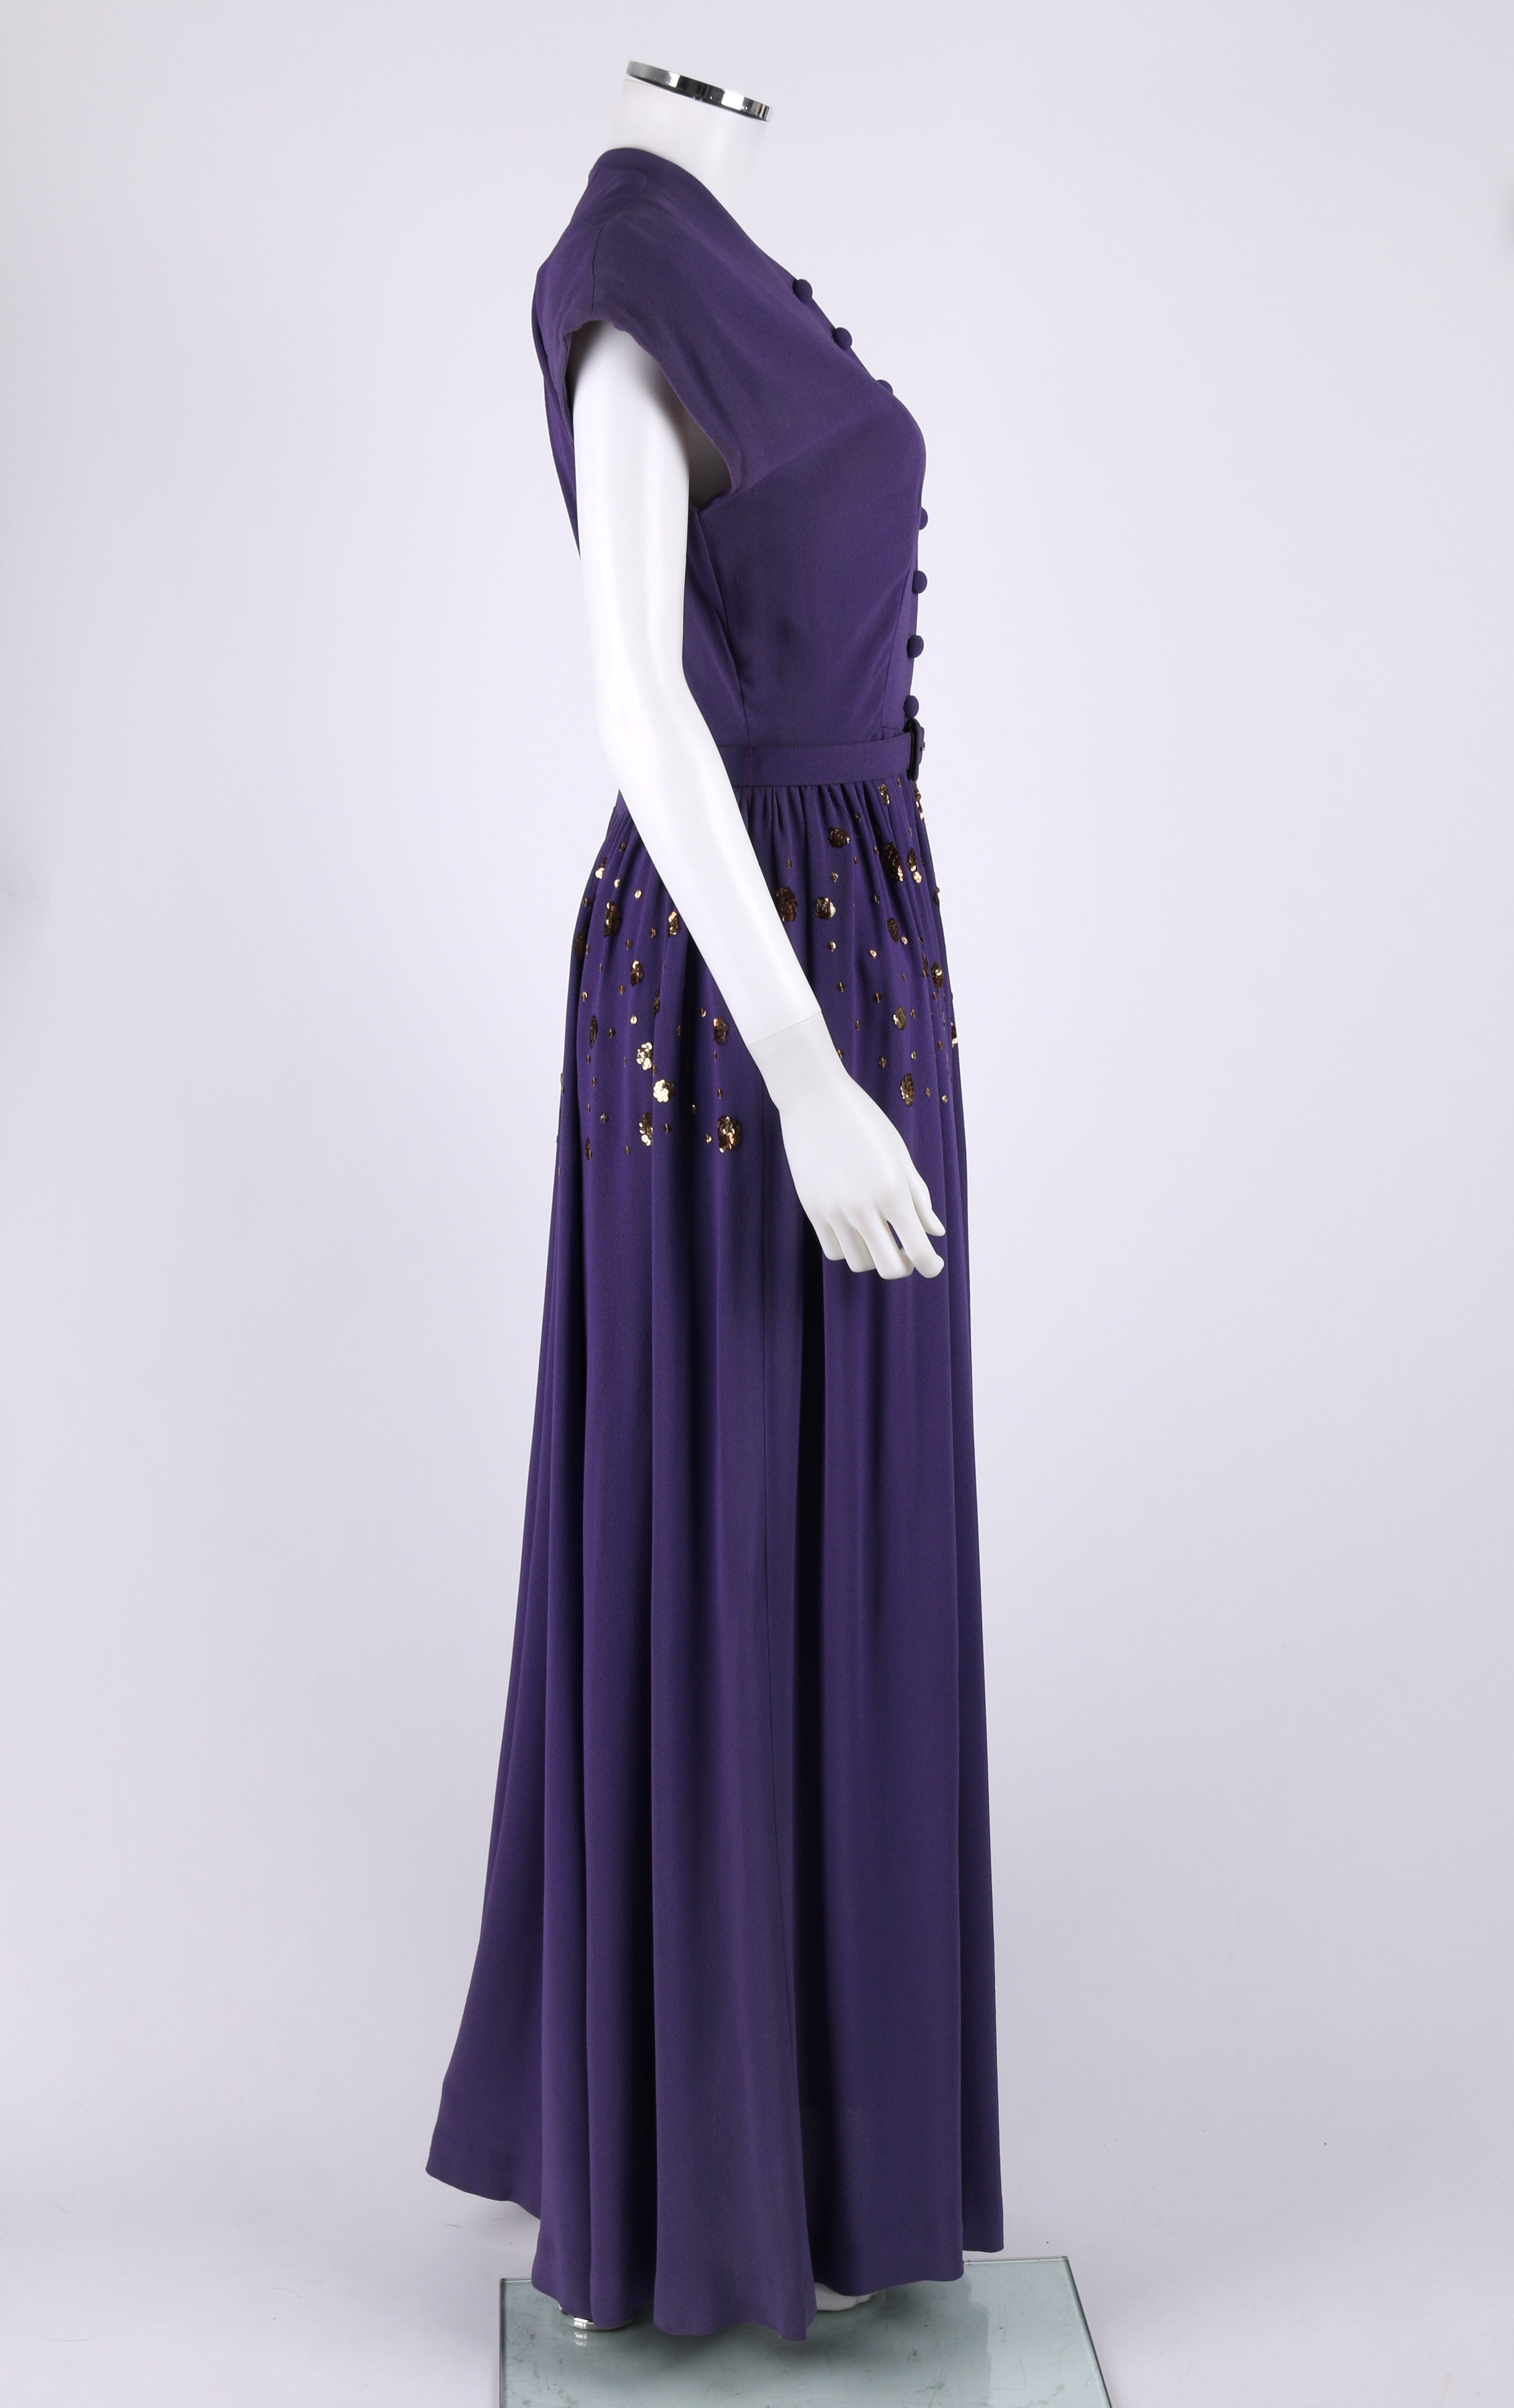 COUTURE c.1940 s Purple Gold Belted Sequin Embellished Evening Dress Gown  For Sale at 1stdibs 97687cd56